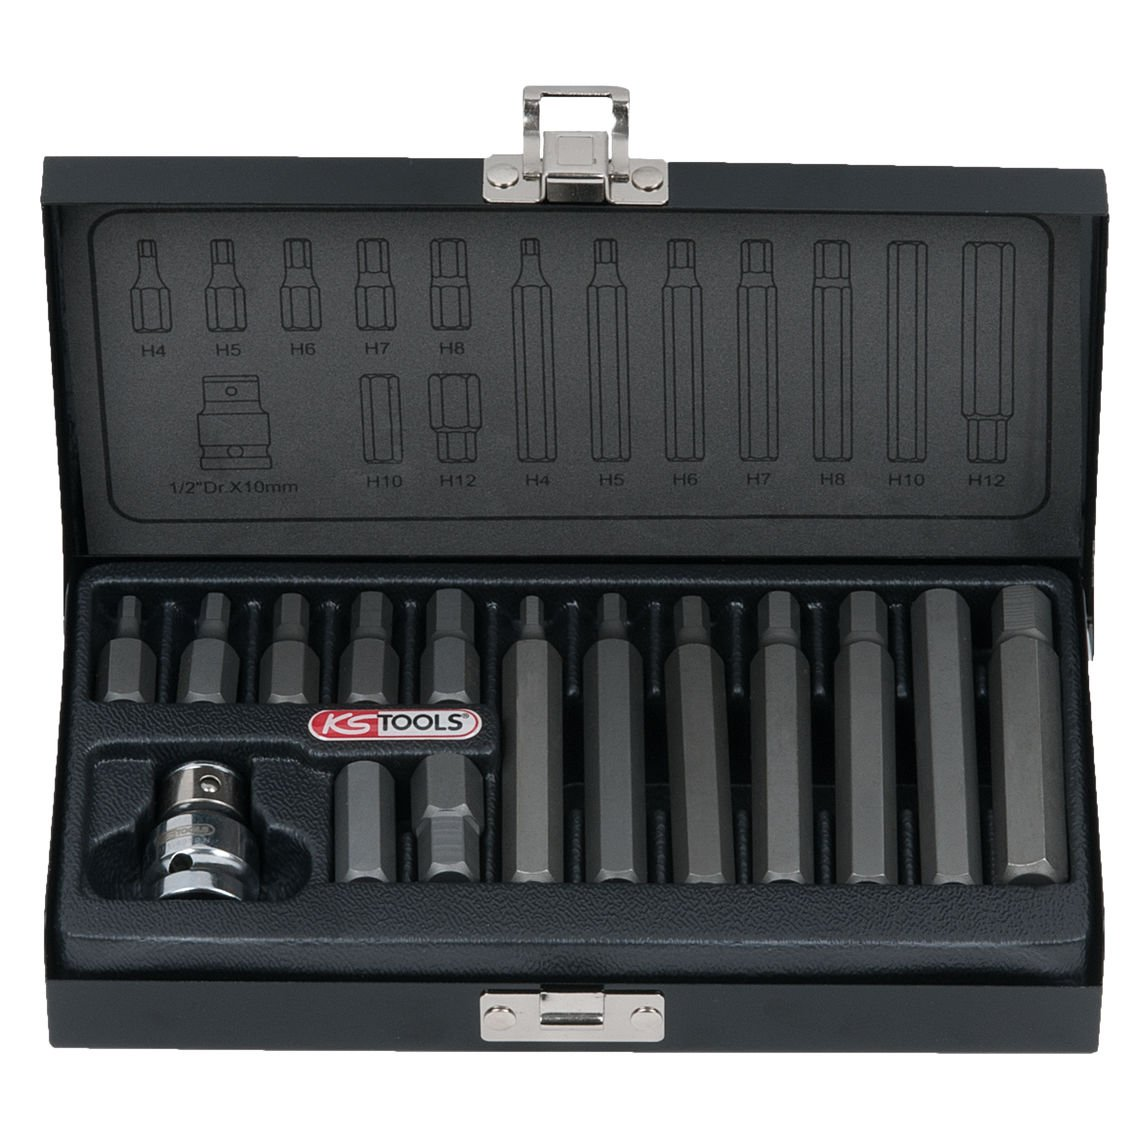 KS TOOLS 911.5040 Coffret de 15 Embout de vissages 6 pans 1/2'', 10 mm 4042146053881